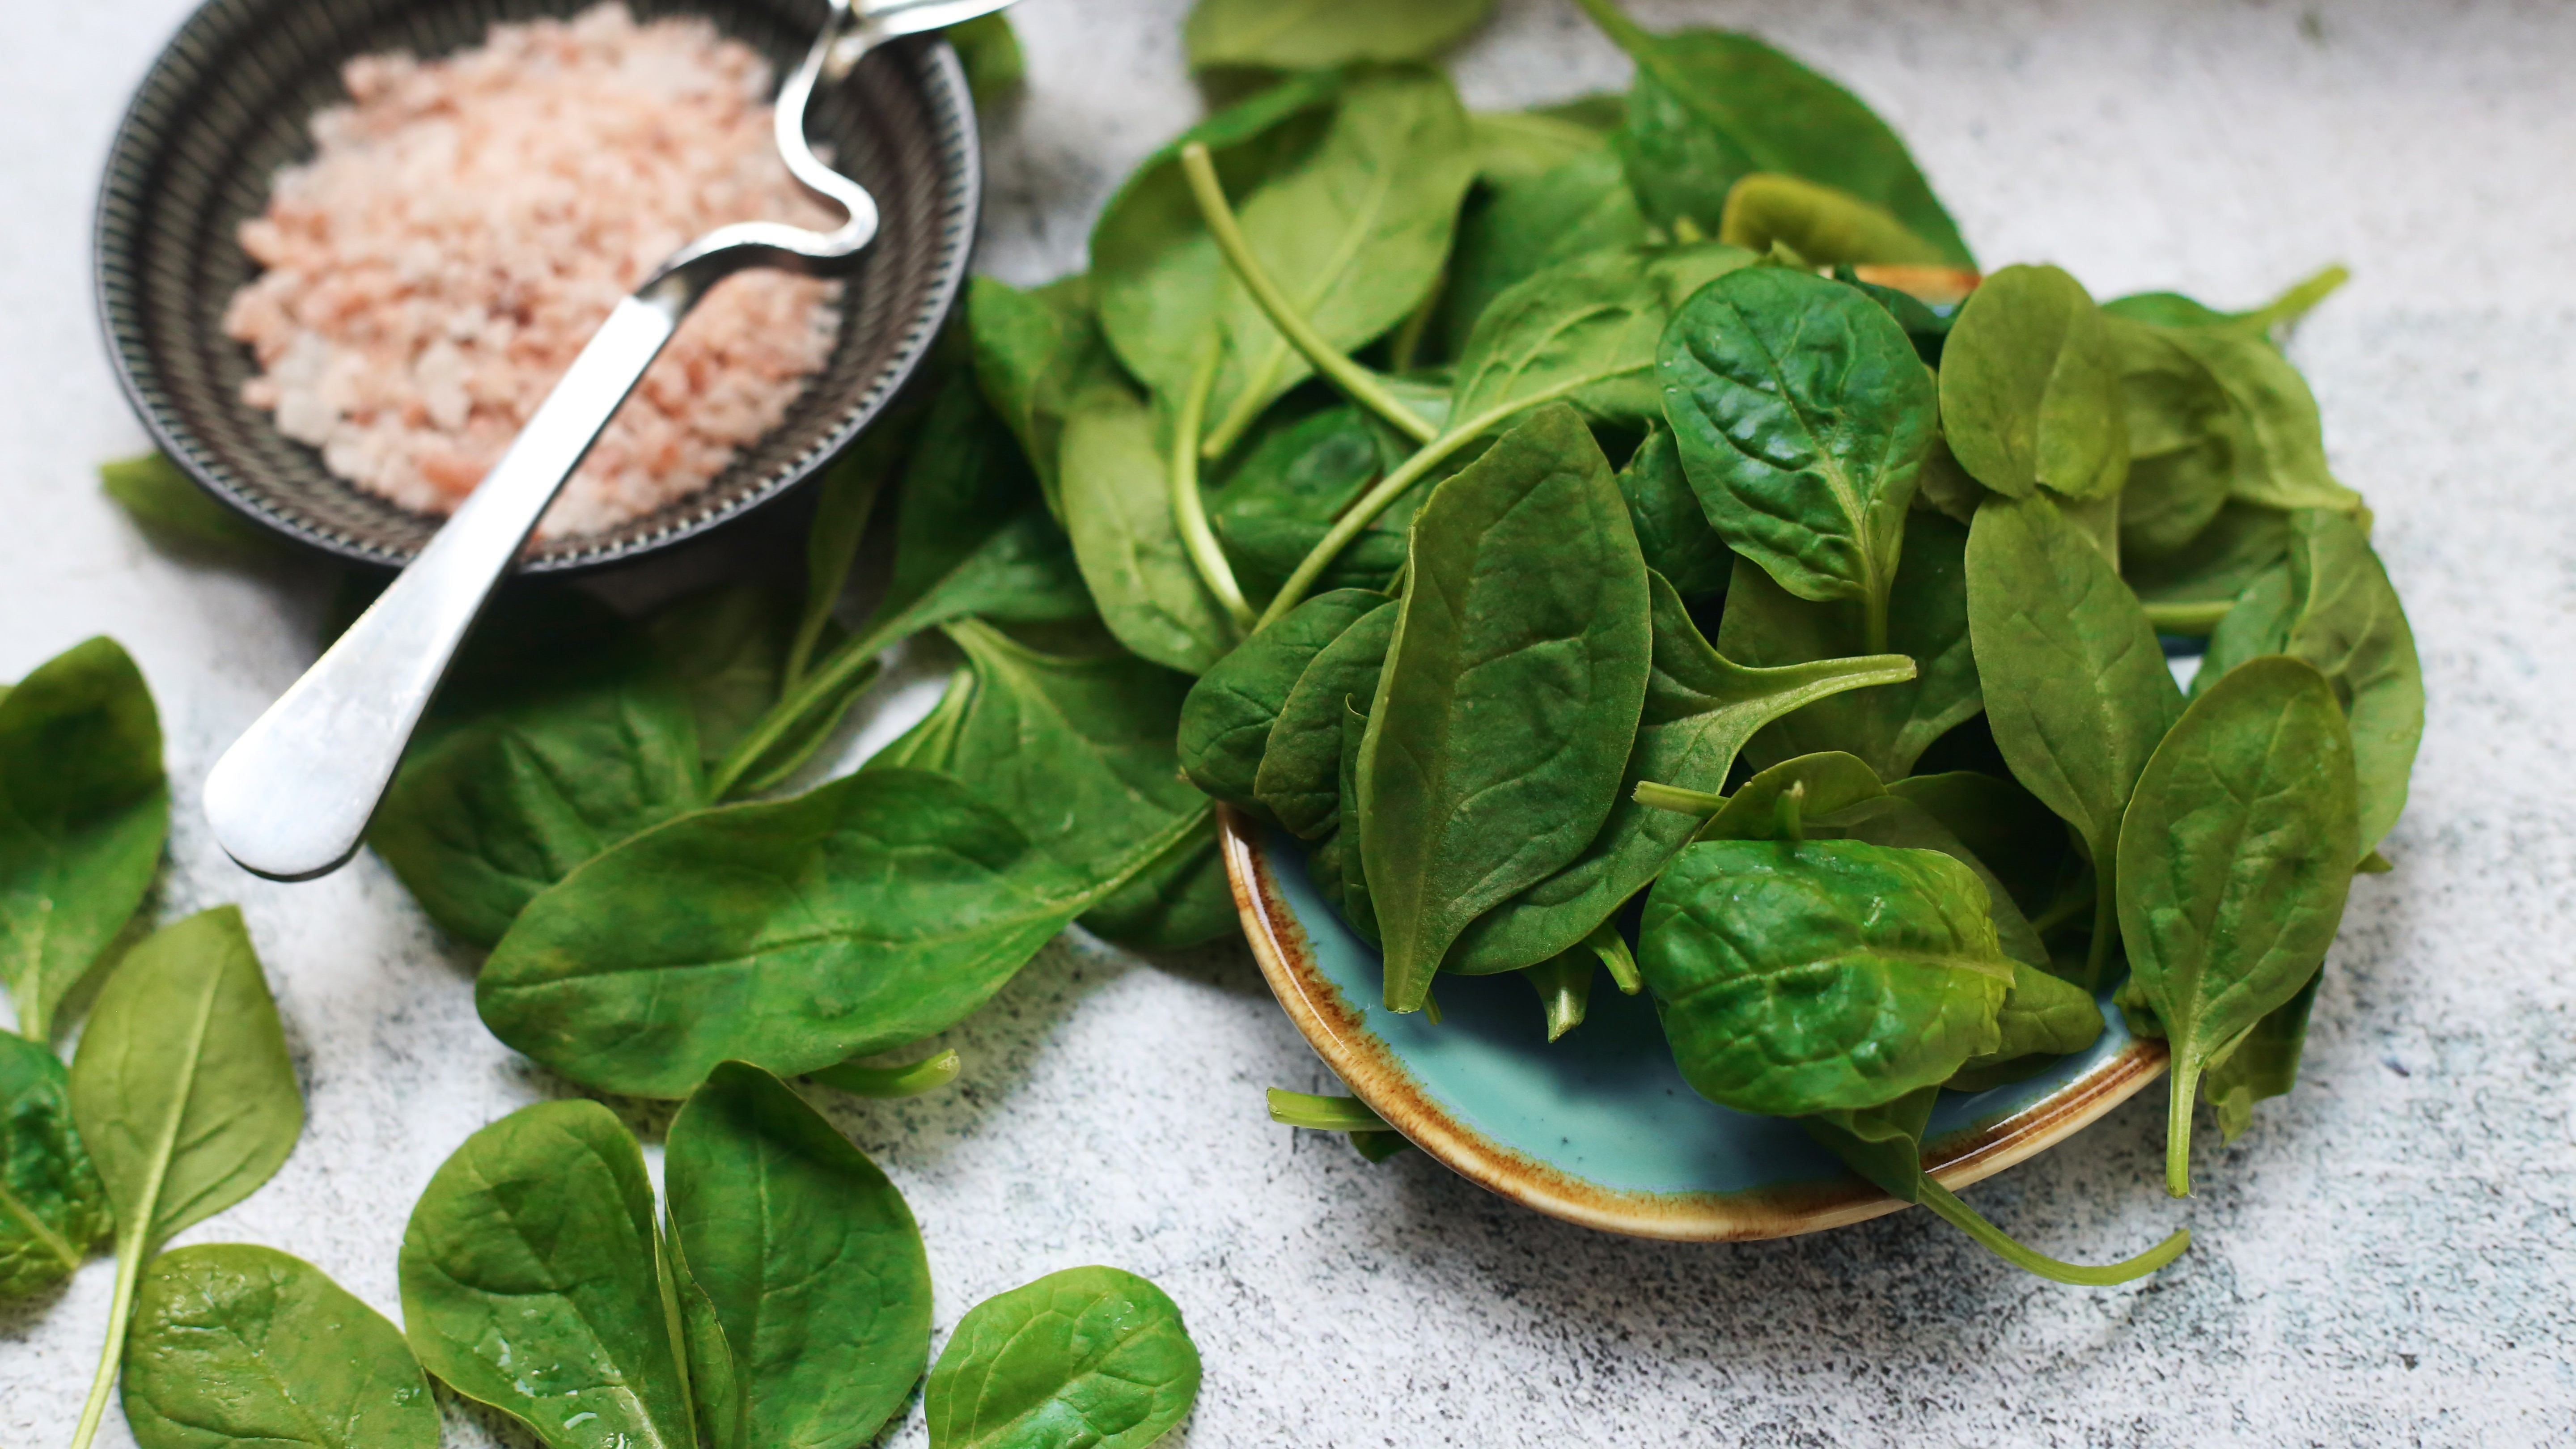 A bowl of leafy greens next to a bowl of grains